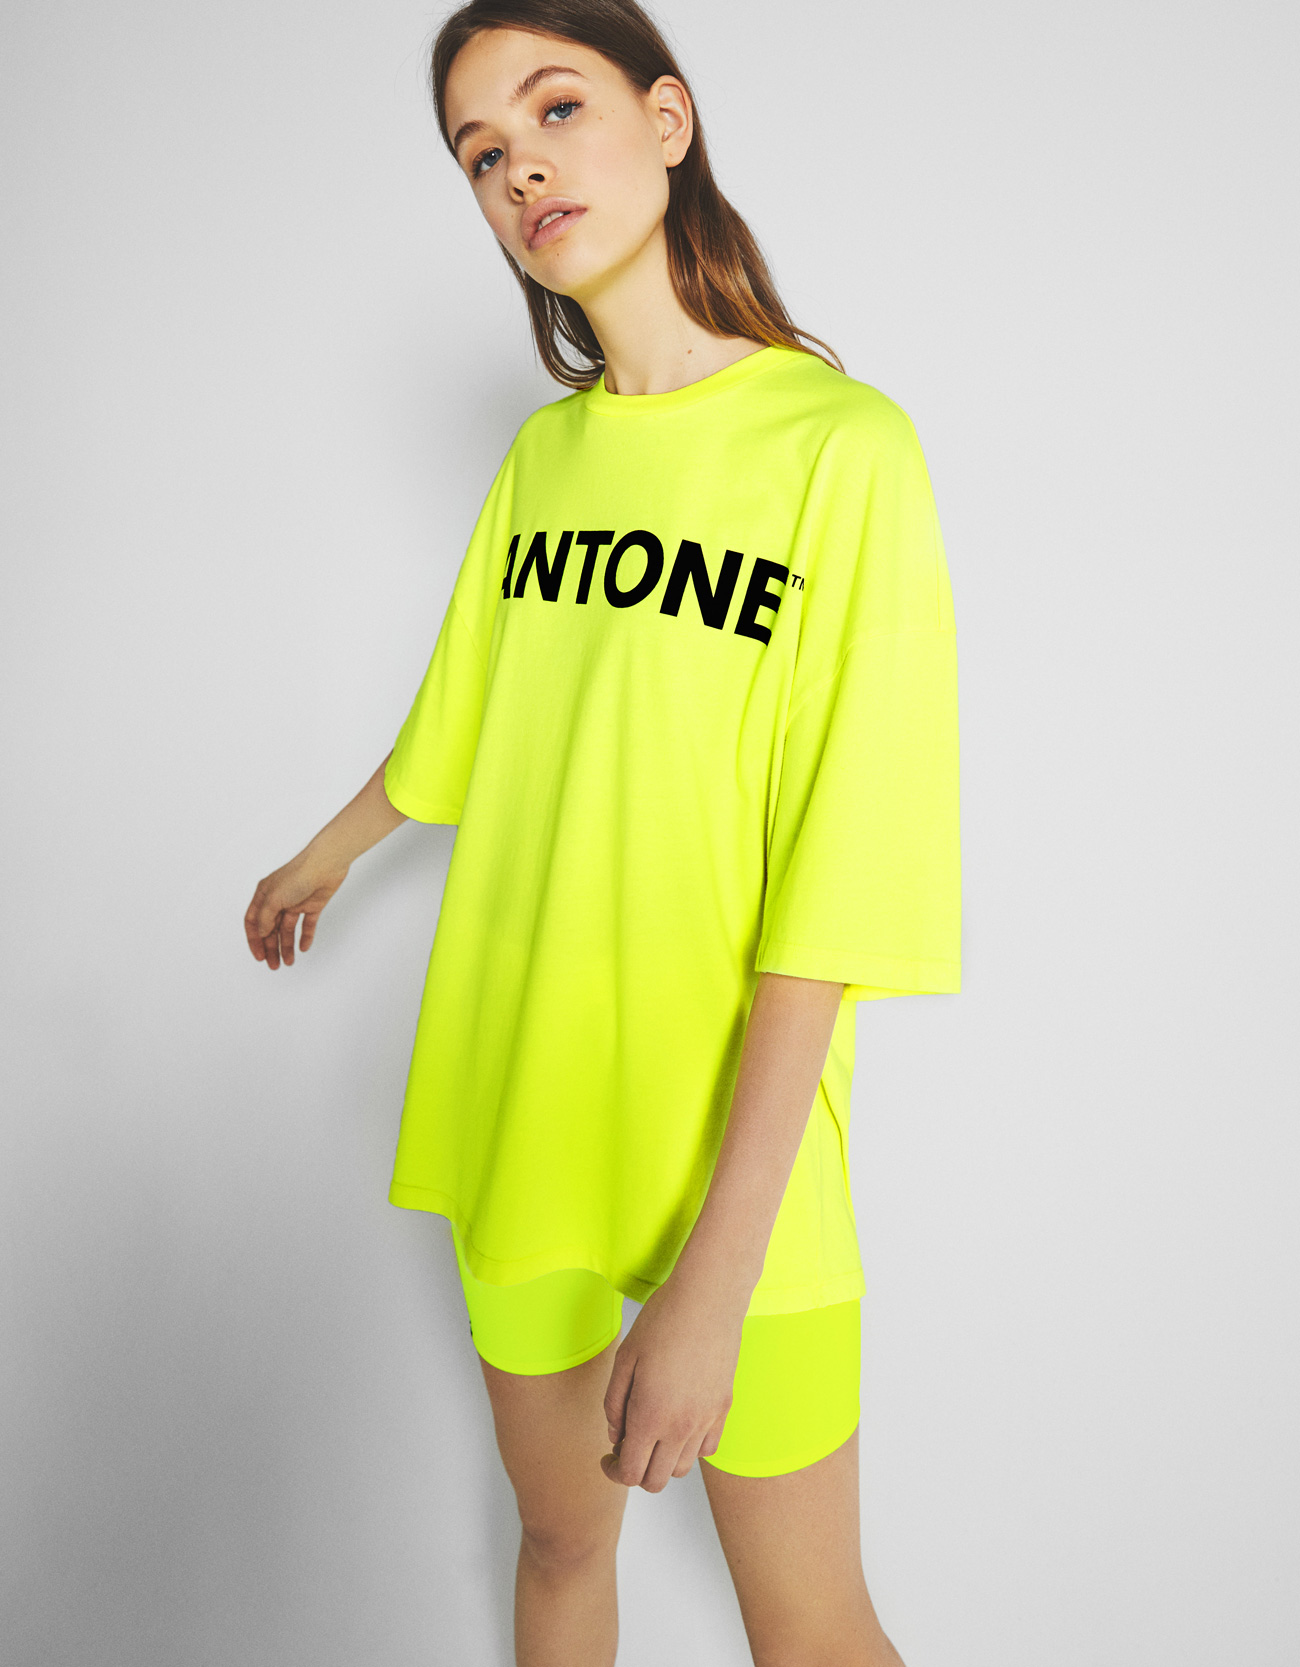 f7a5a82ad Bershka + PANTONE dad fit T-shirt - New - Bershka United States